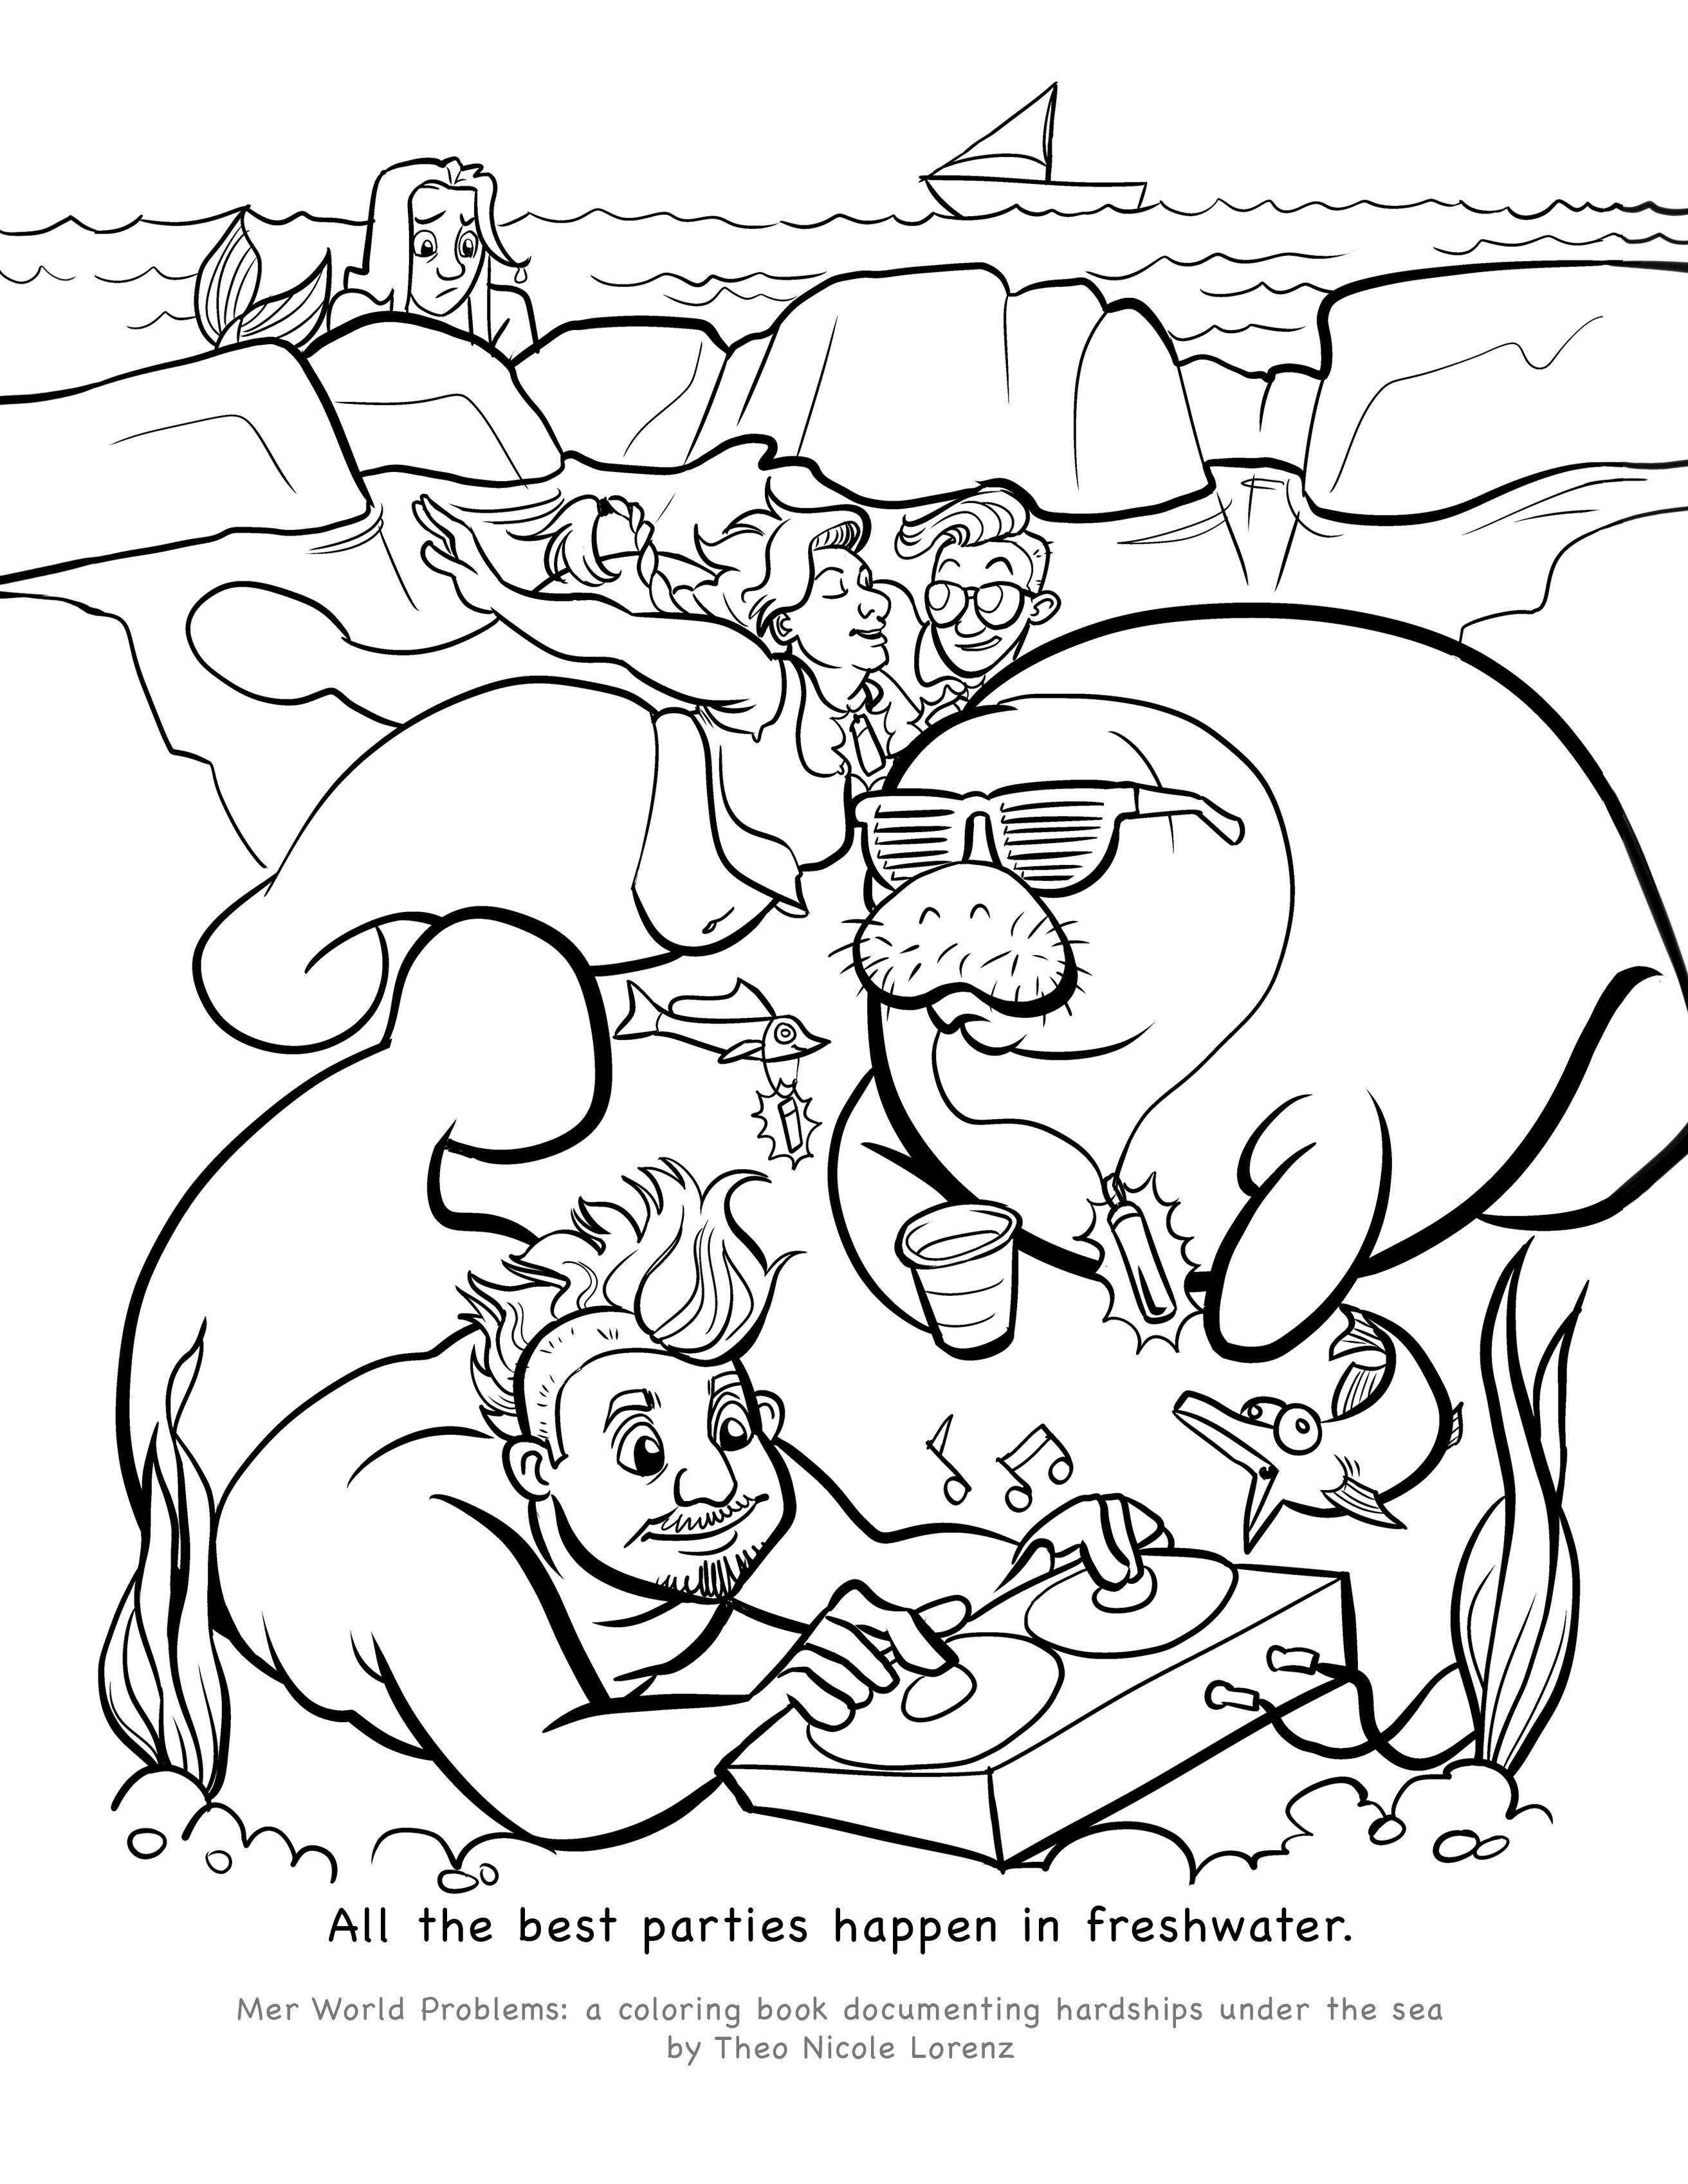 The microbiology coloring book free download - Mer World Problems